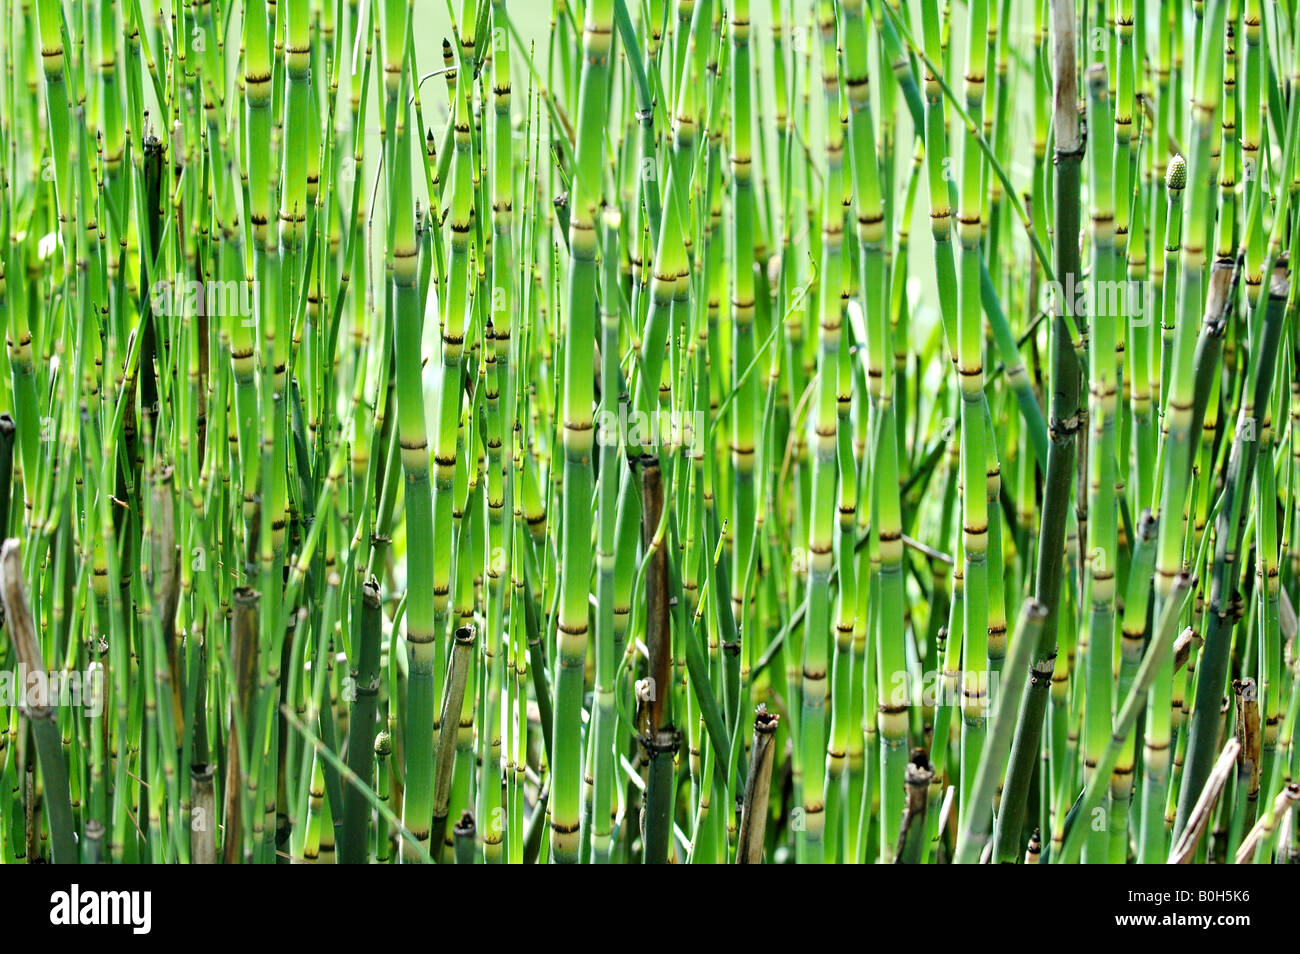 green bamboo background - Stock Image